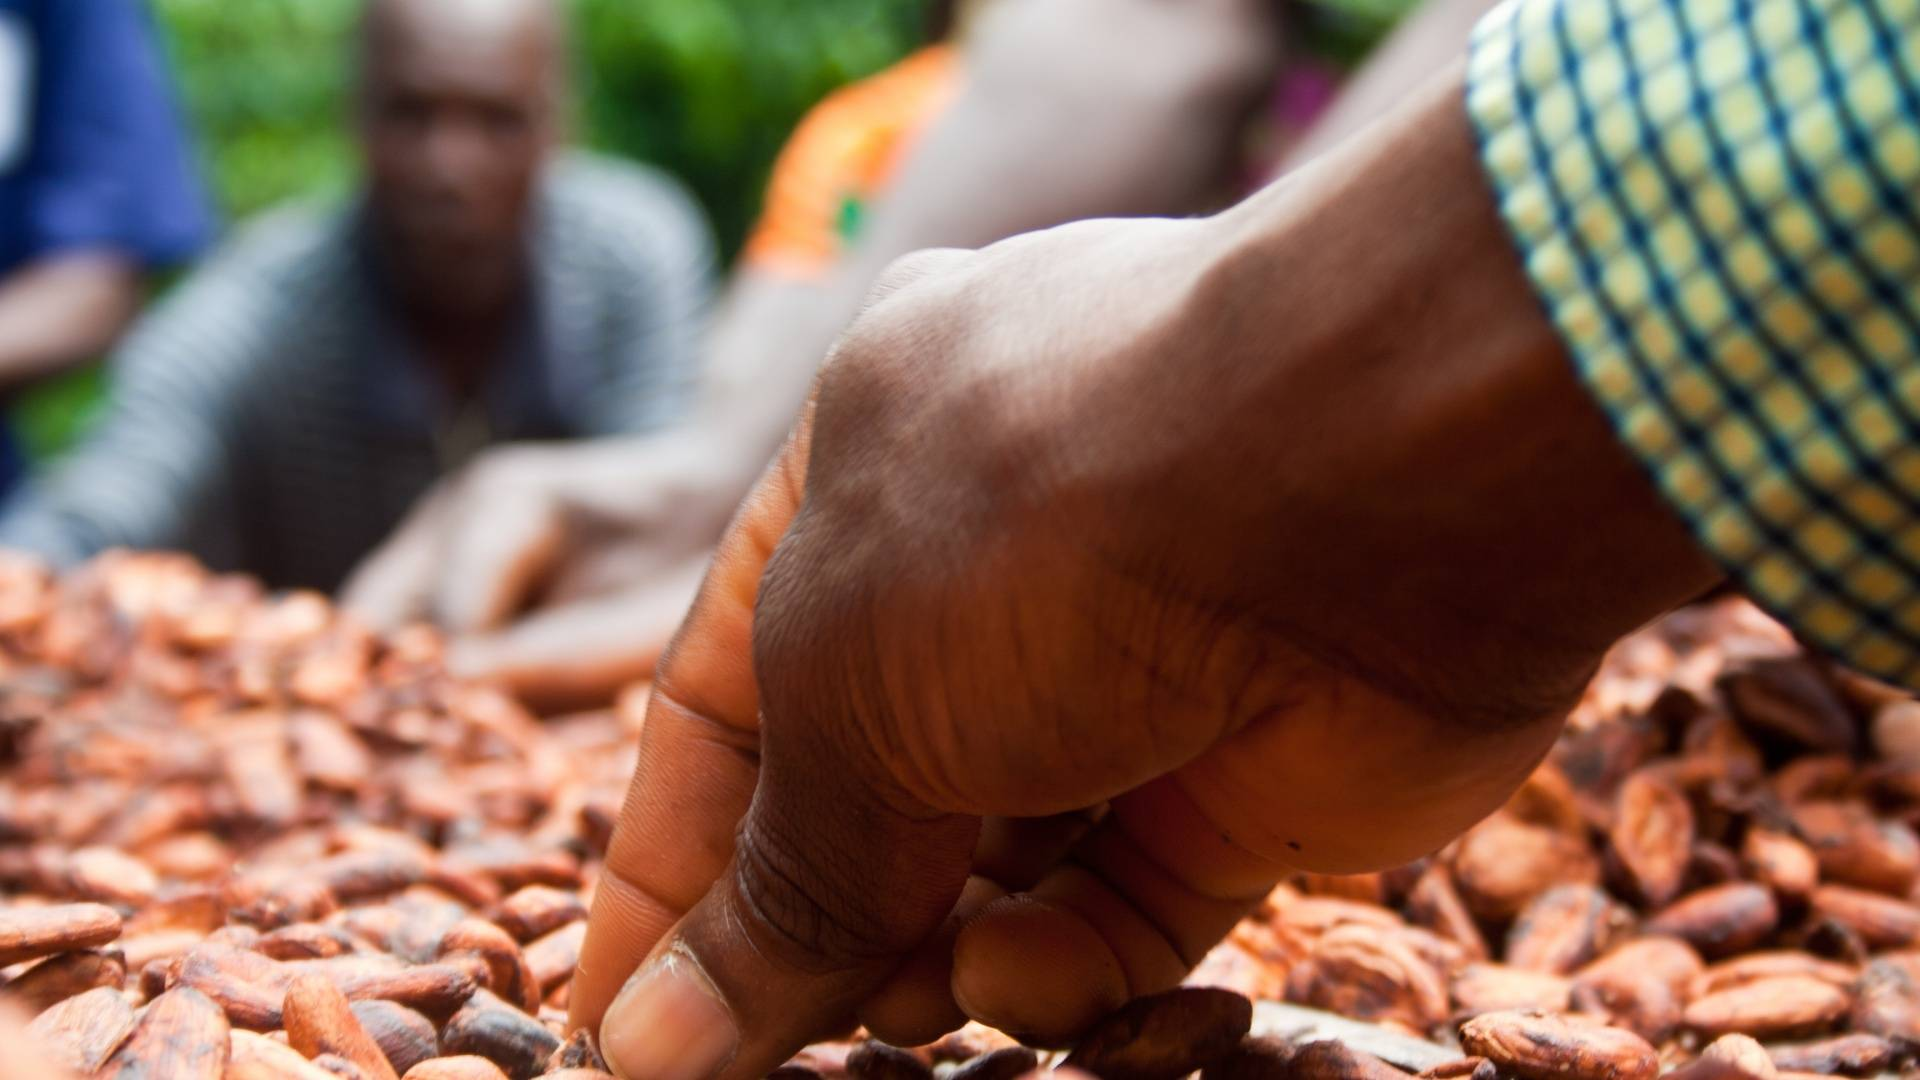 Cocoa sustainable farming and harvest Farmer Hand UTZ